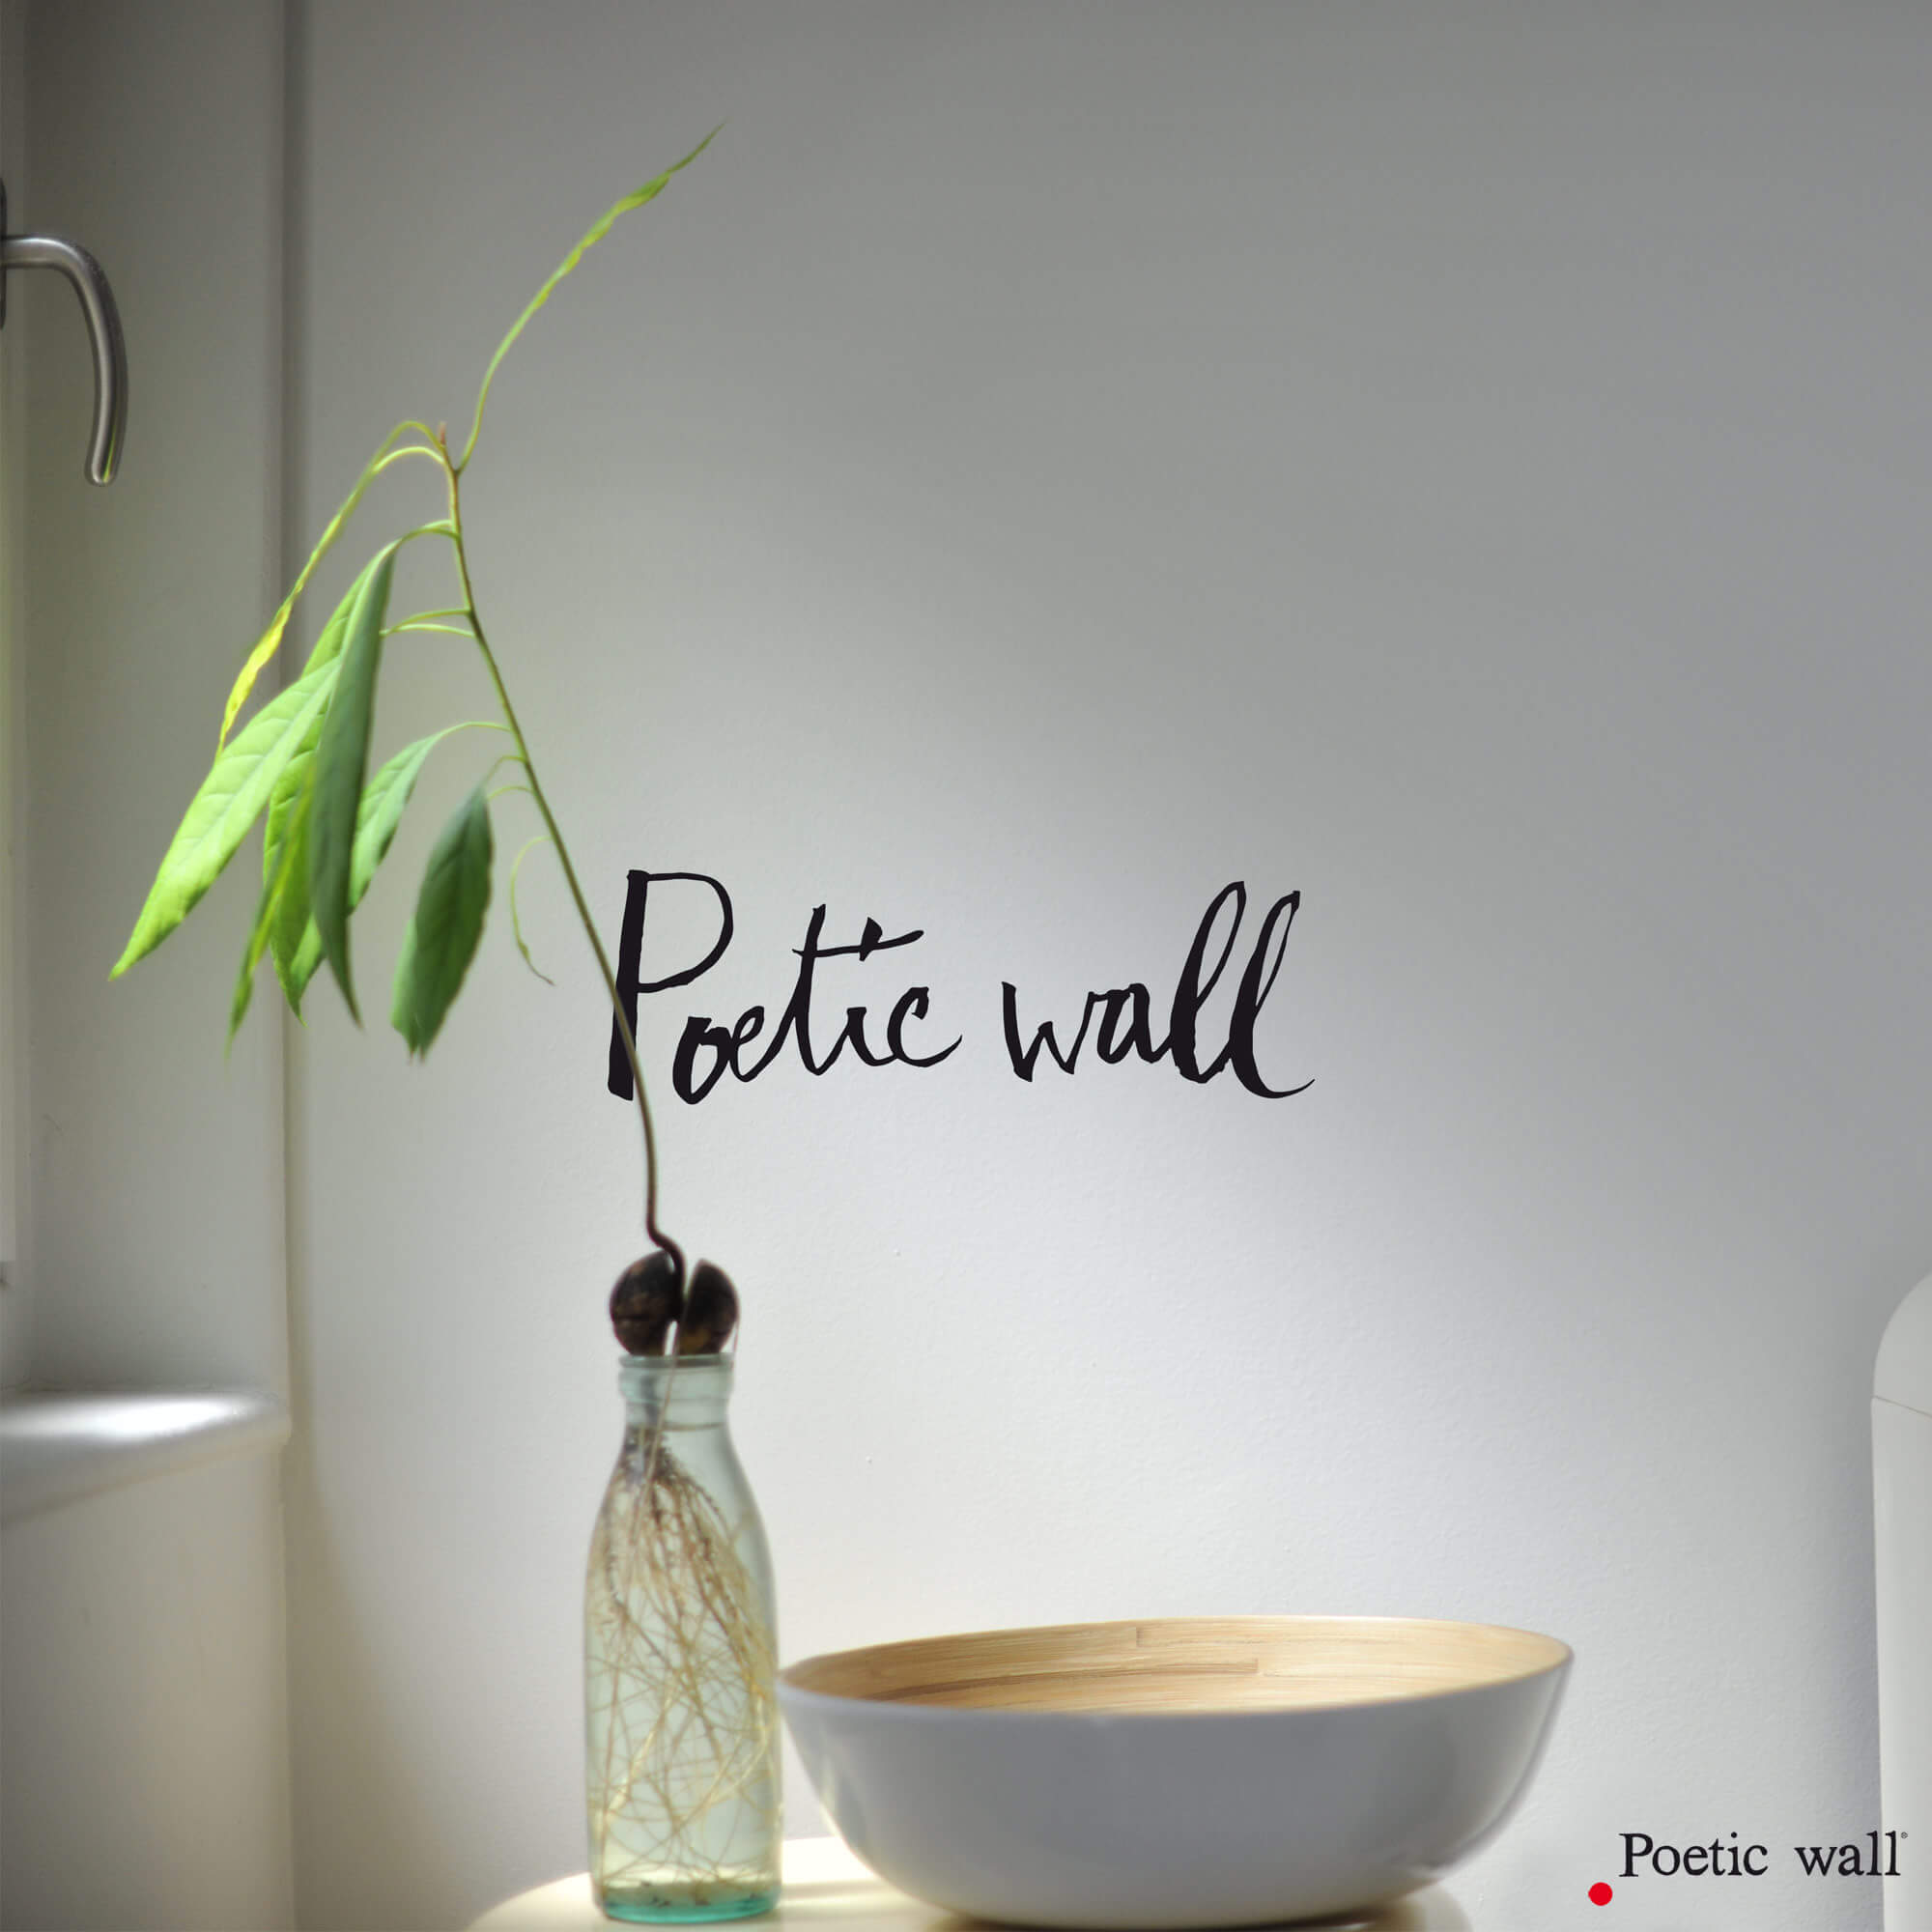 stickers texte poetic wall